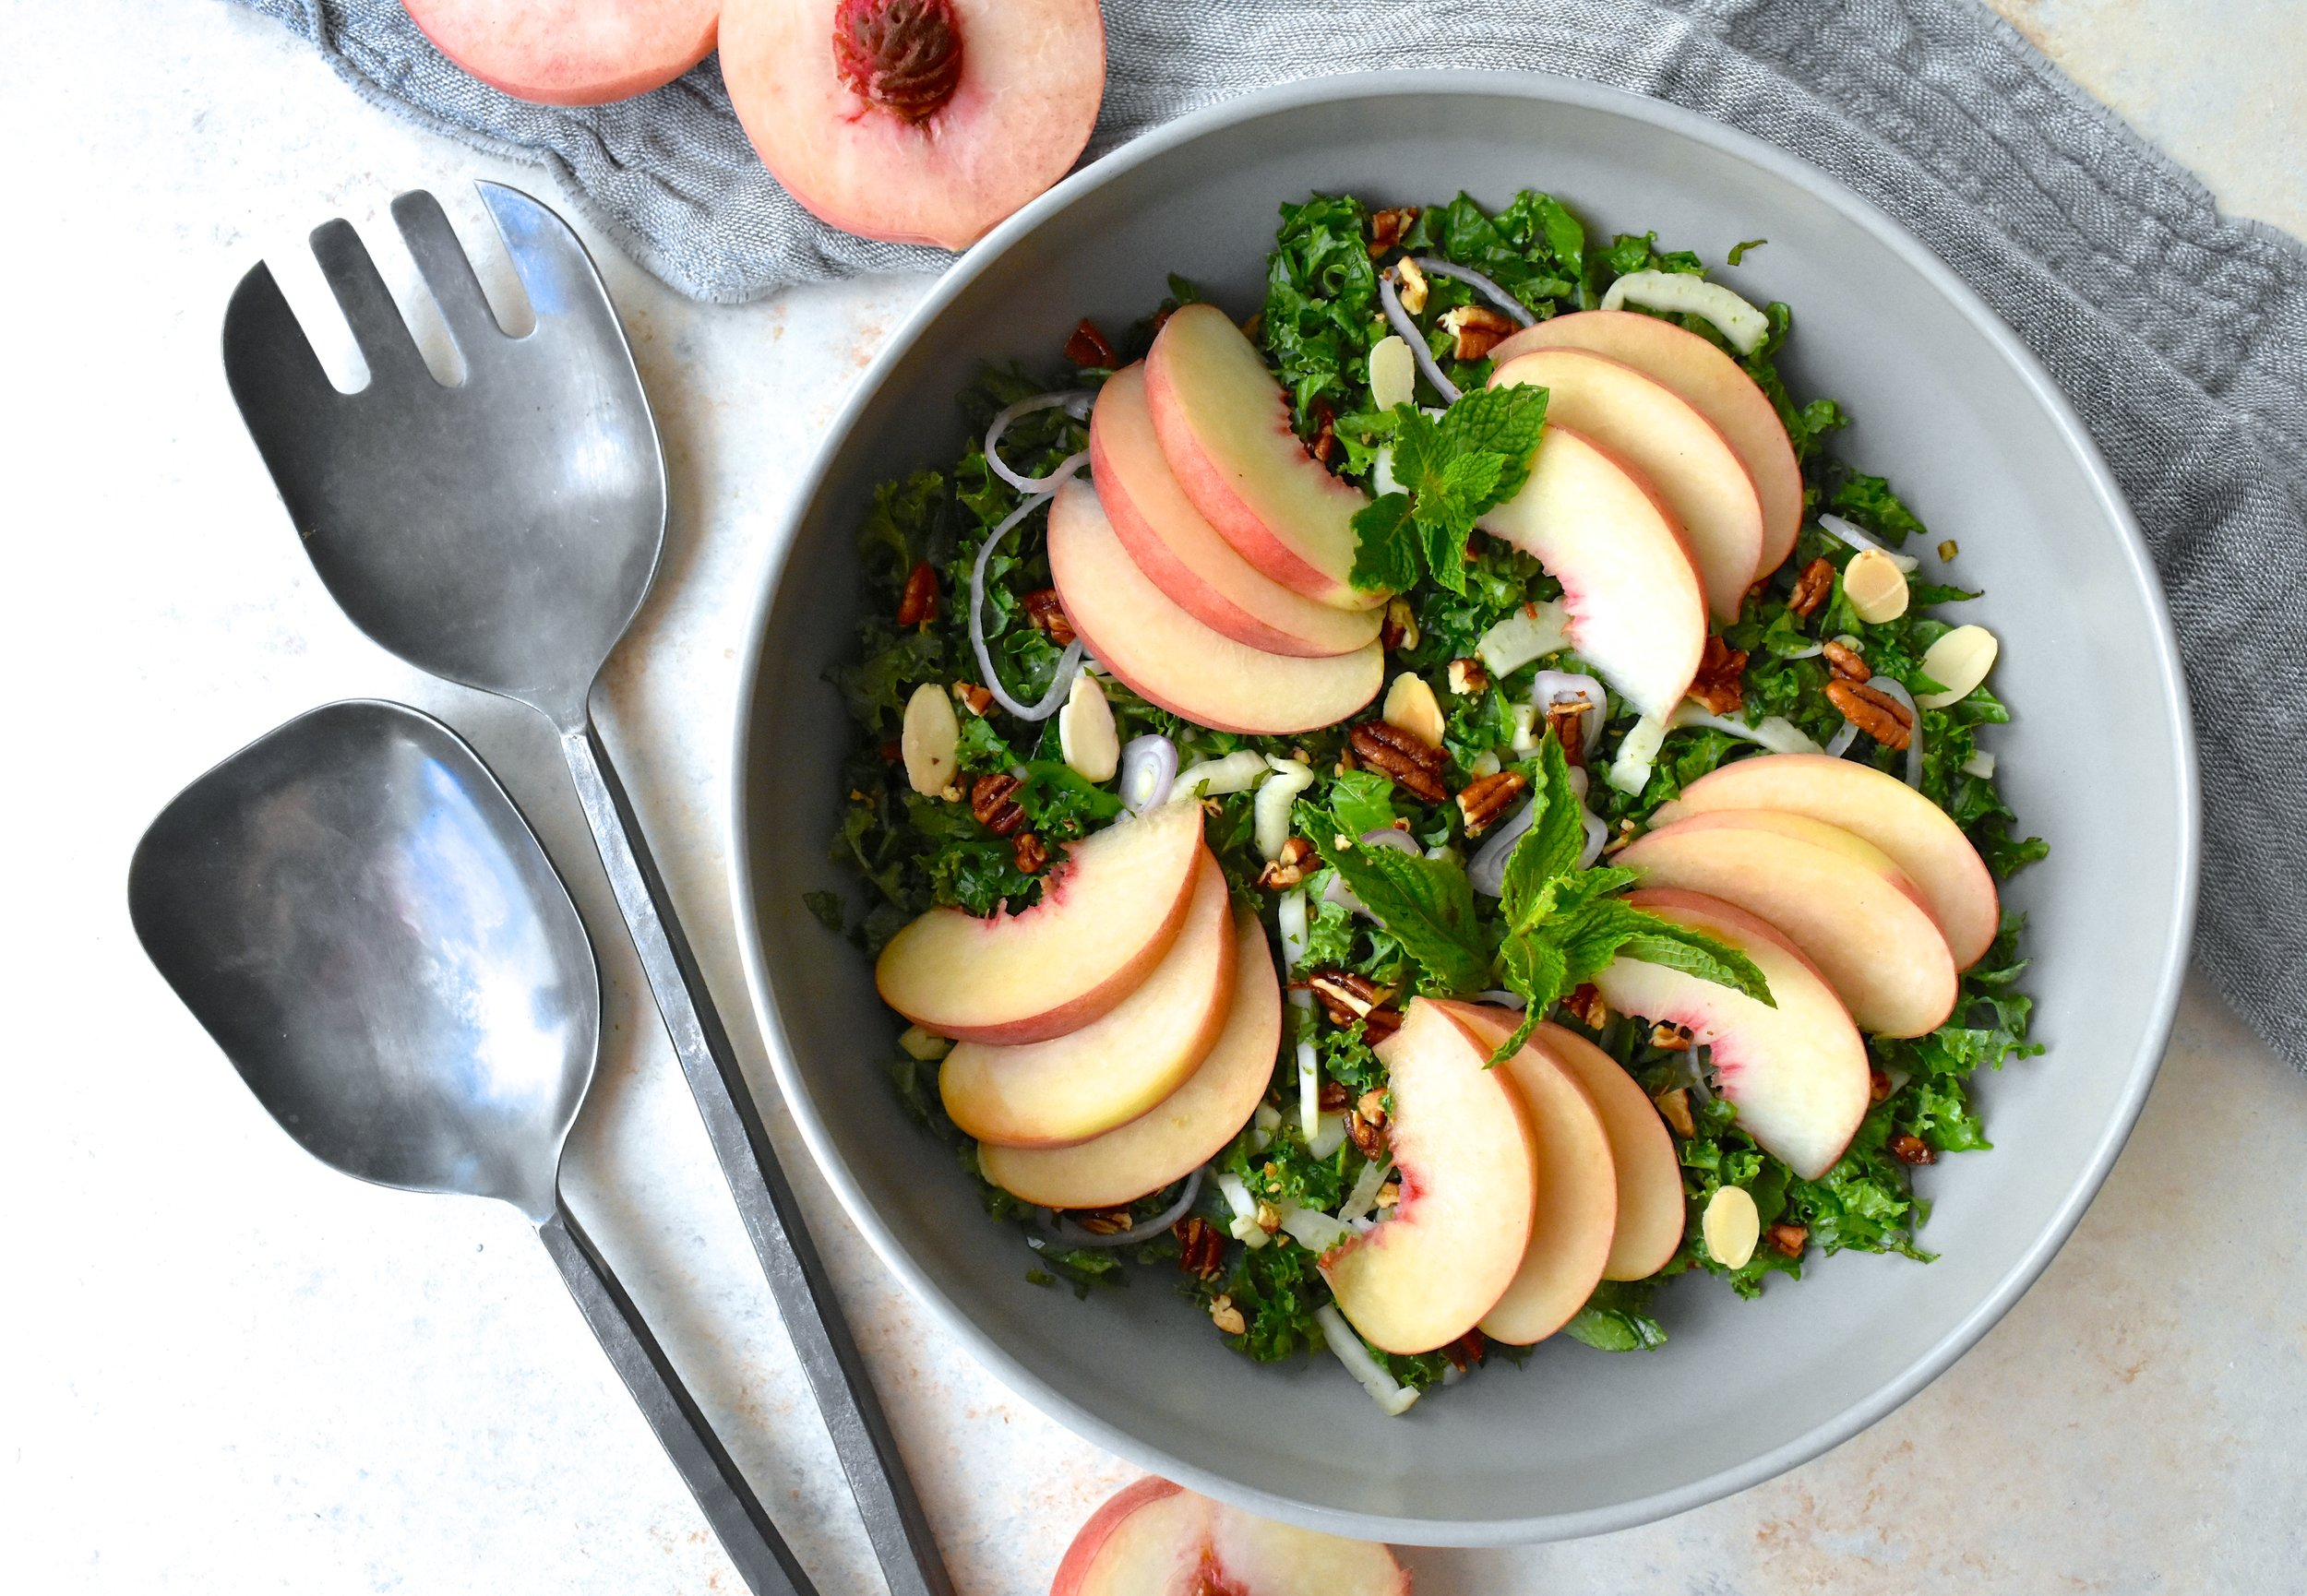 Peach and Kale Salad